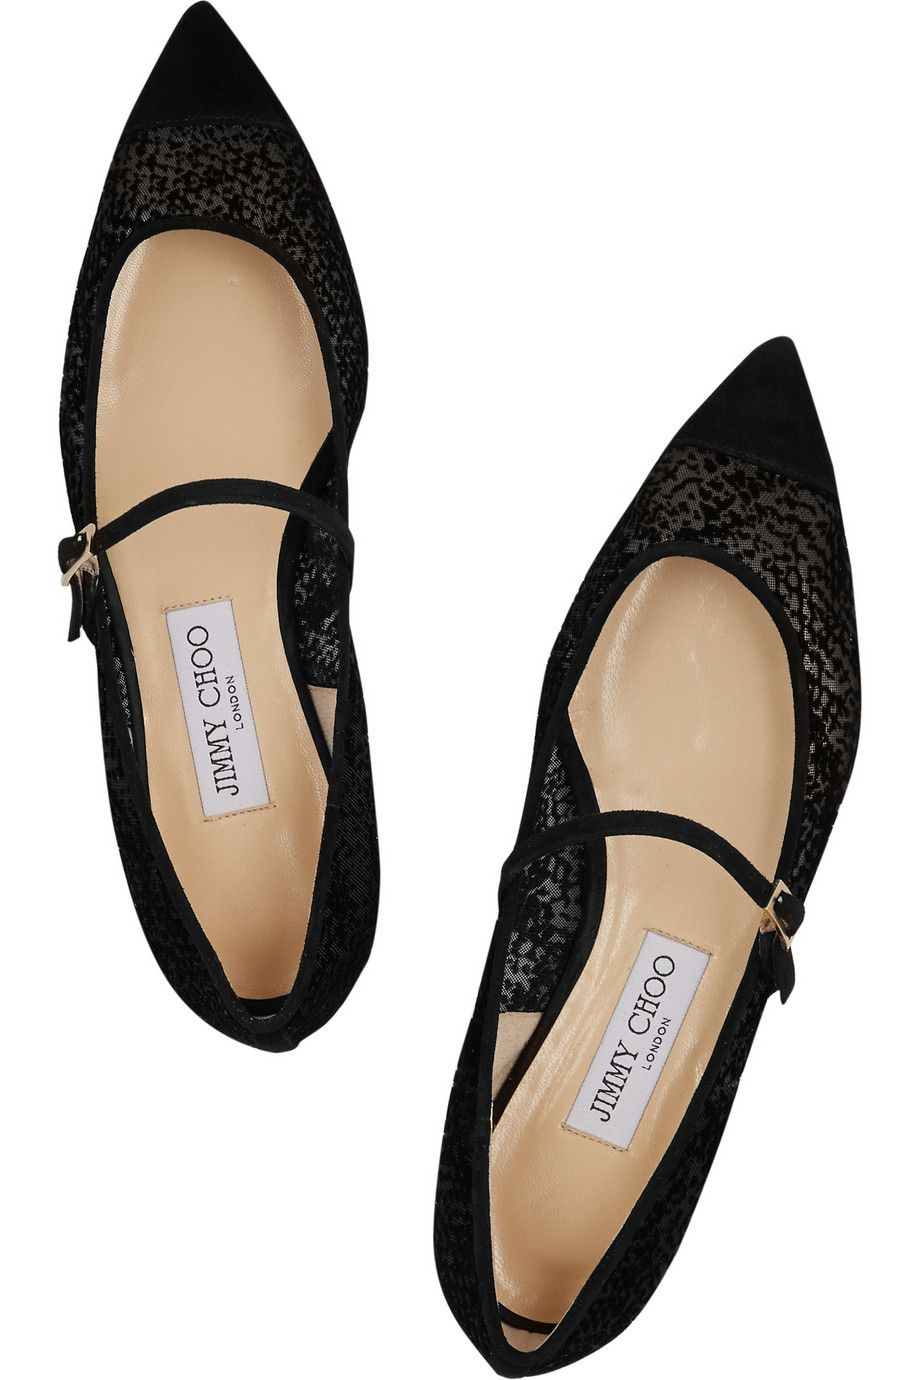 Jimmy Choo|Blanch suede-trimmed flocked mesh point-toe flats|NET-A-PORTER.COM